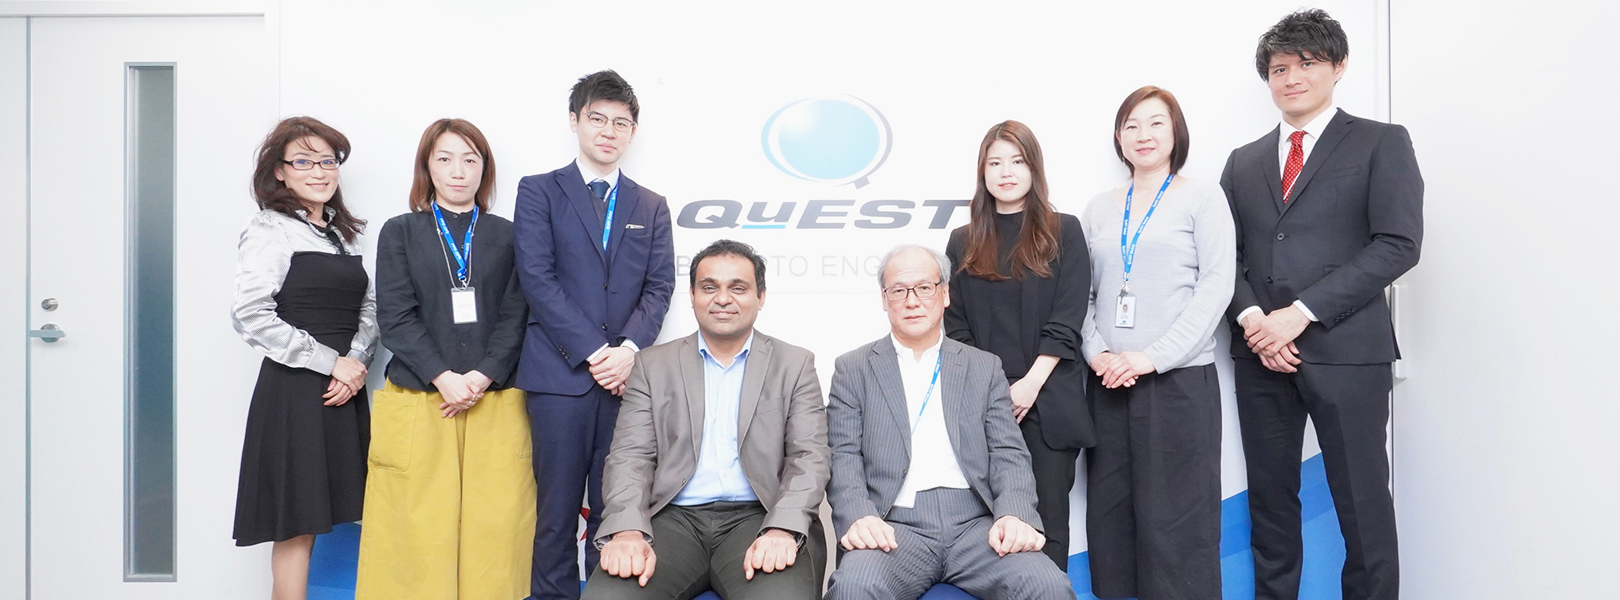 QuEST Global Services Pte. Ltd.の求人情報